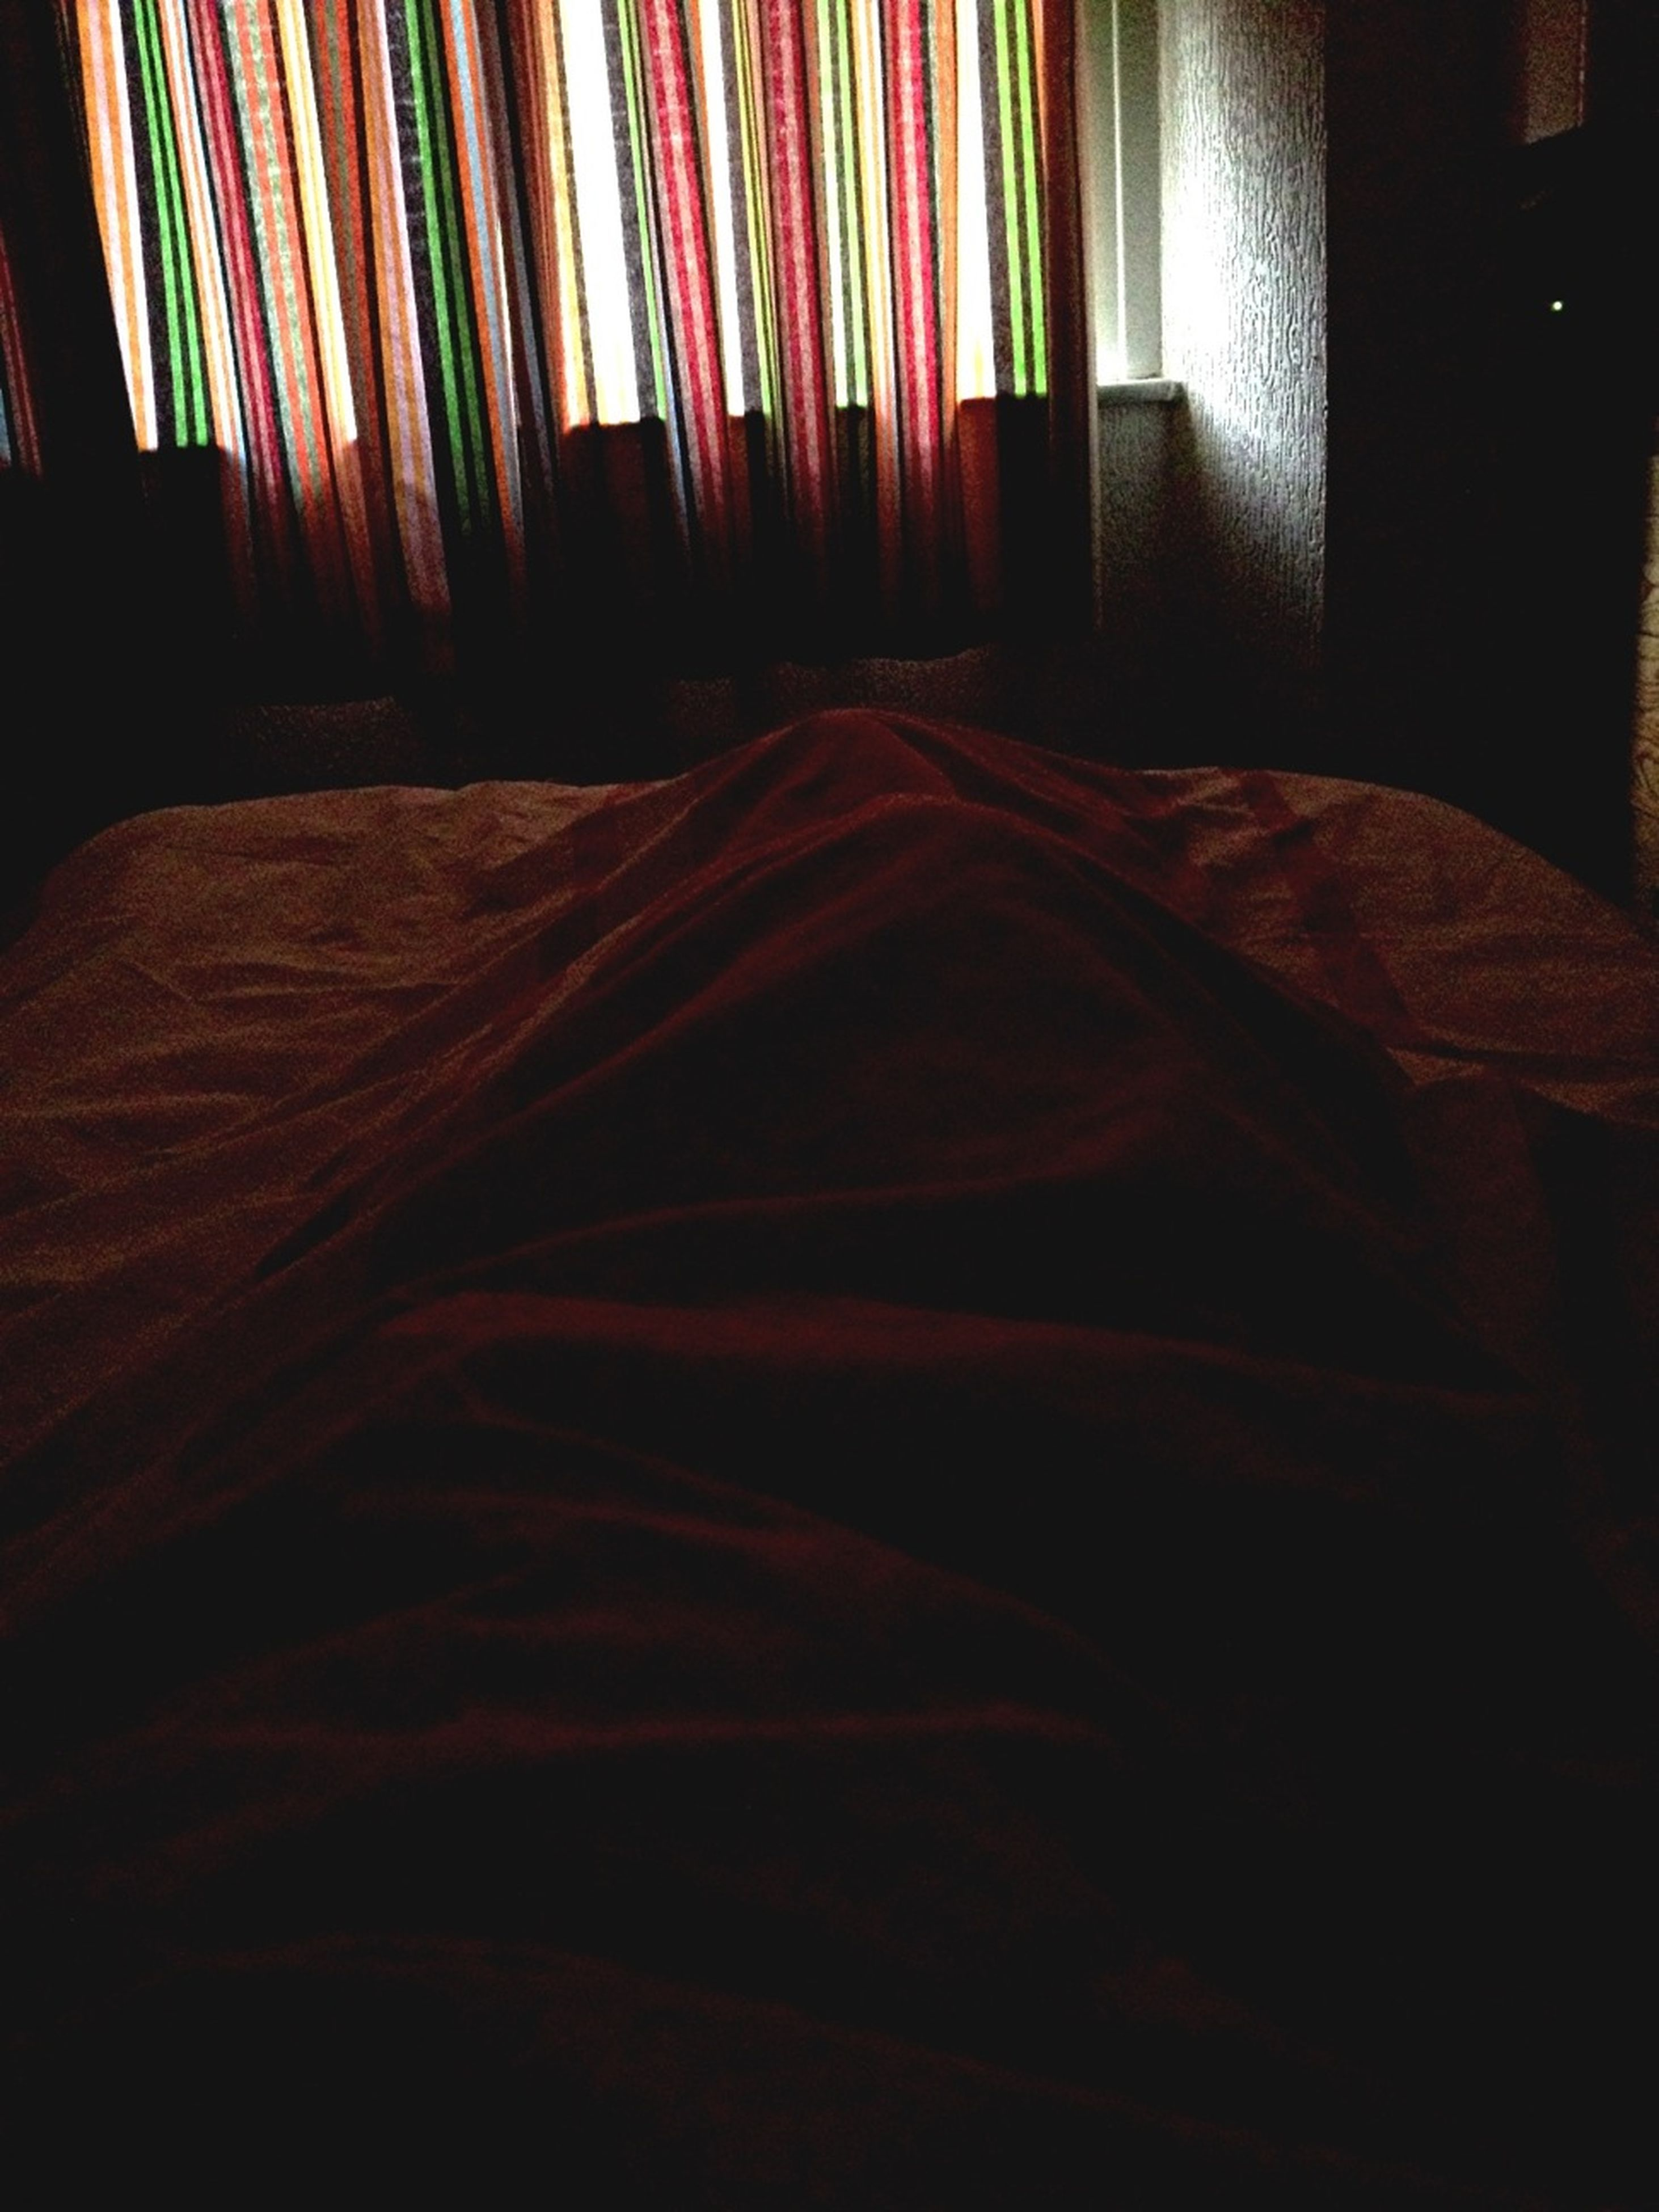 indoors, home interior, no people, pattern, bed, dark, curtain, window, absence, still life, close-up, fabric, house, textile, bedroom, room, table, design, wall - building feature, shadow